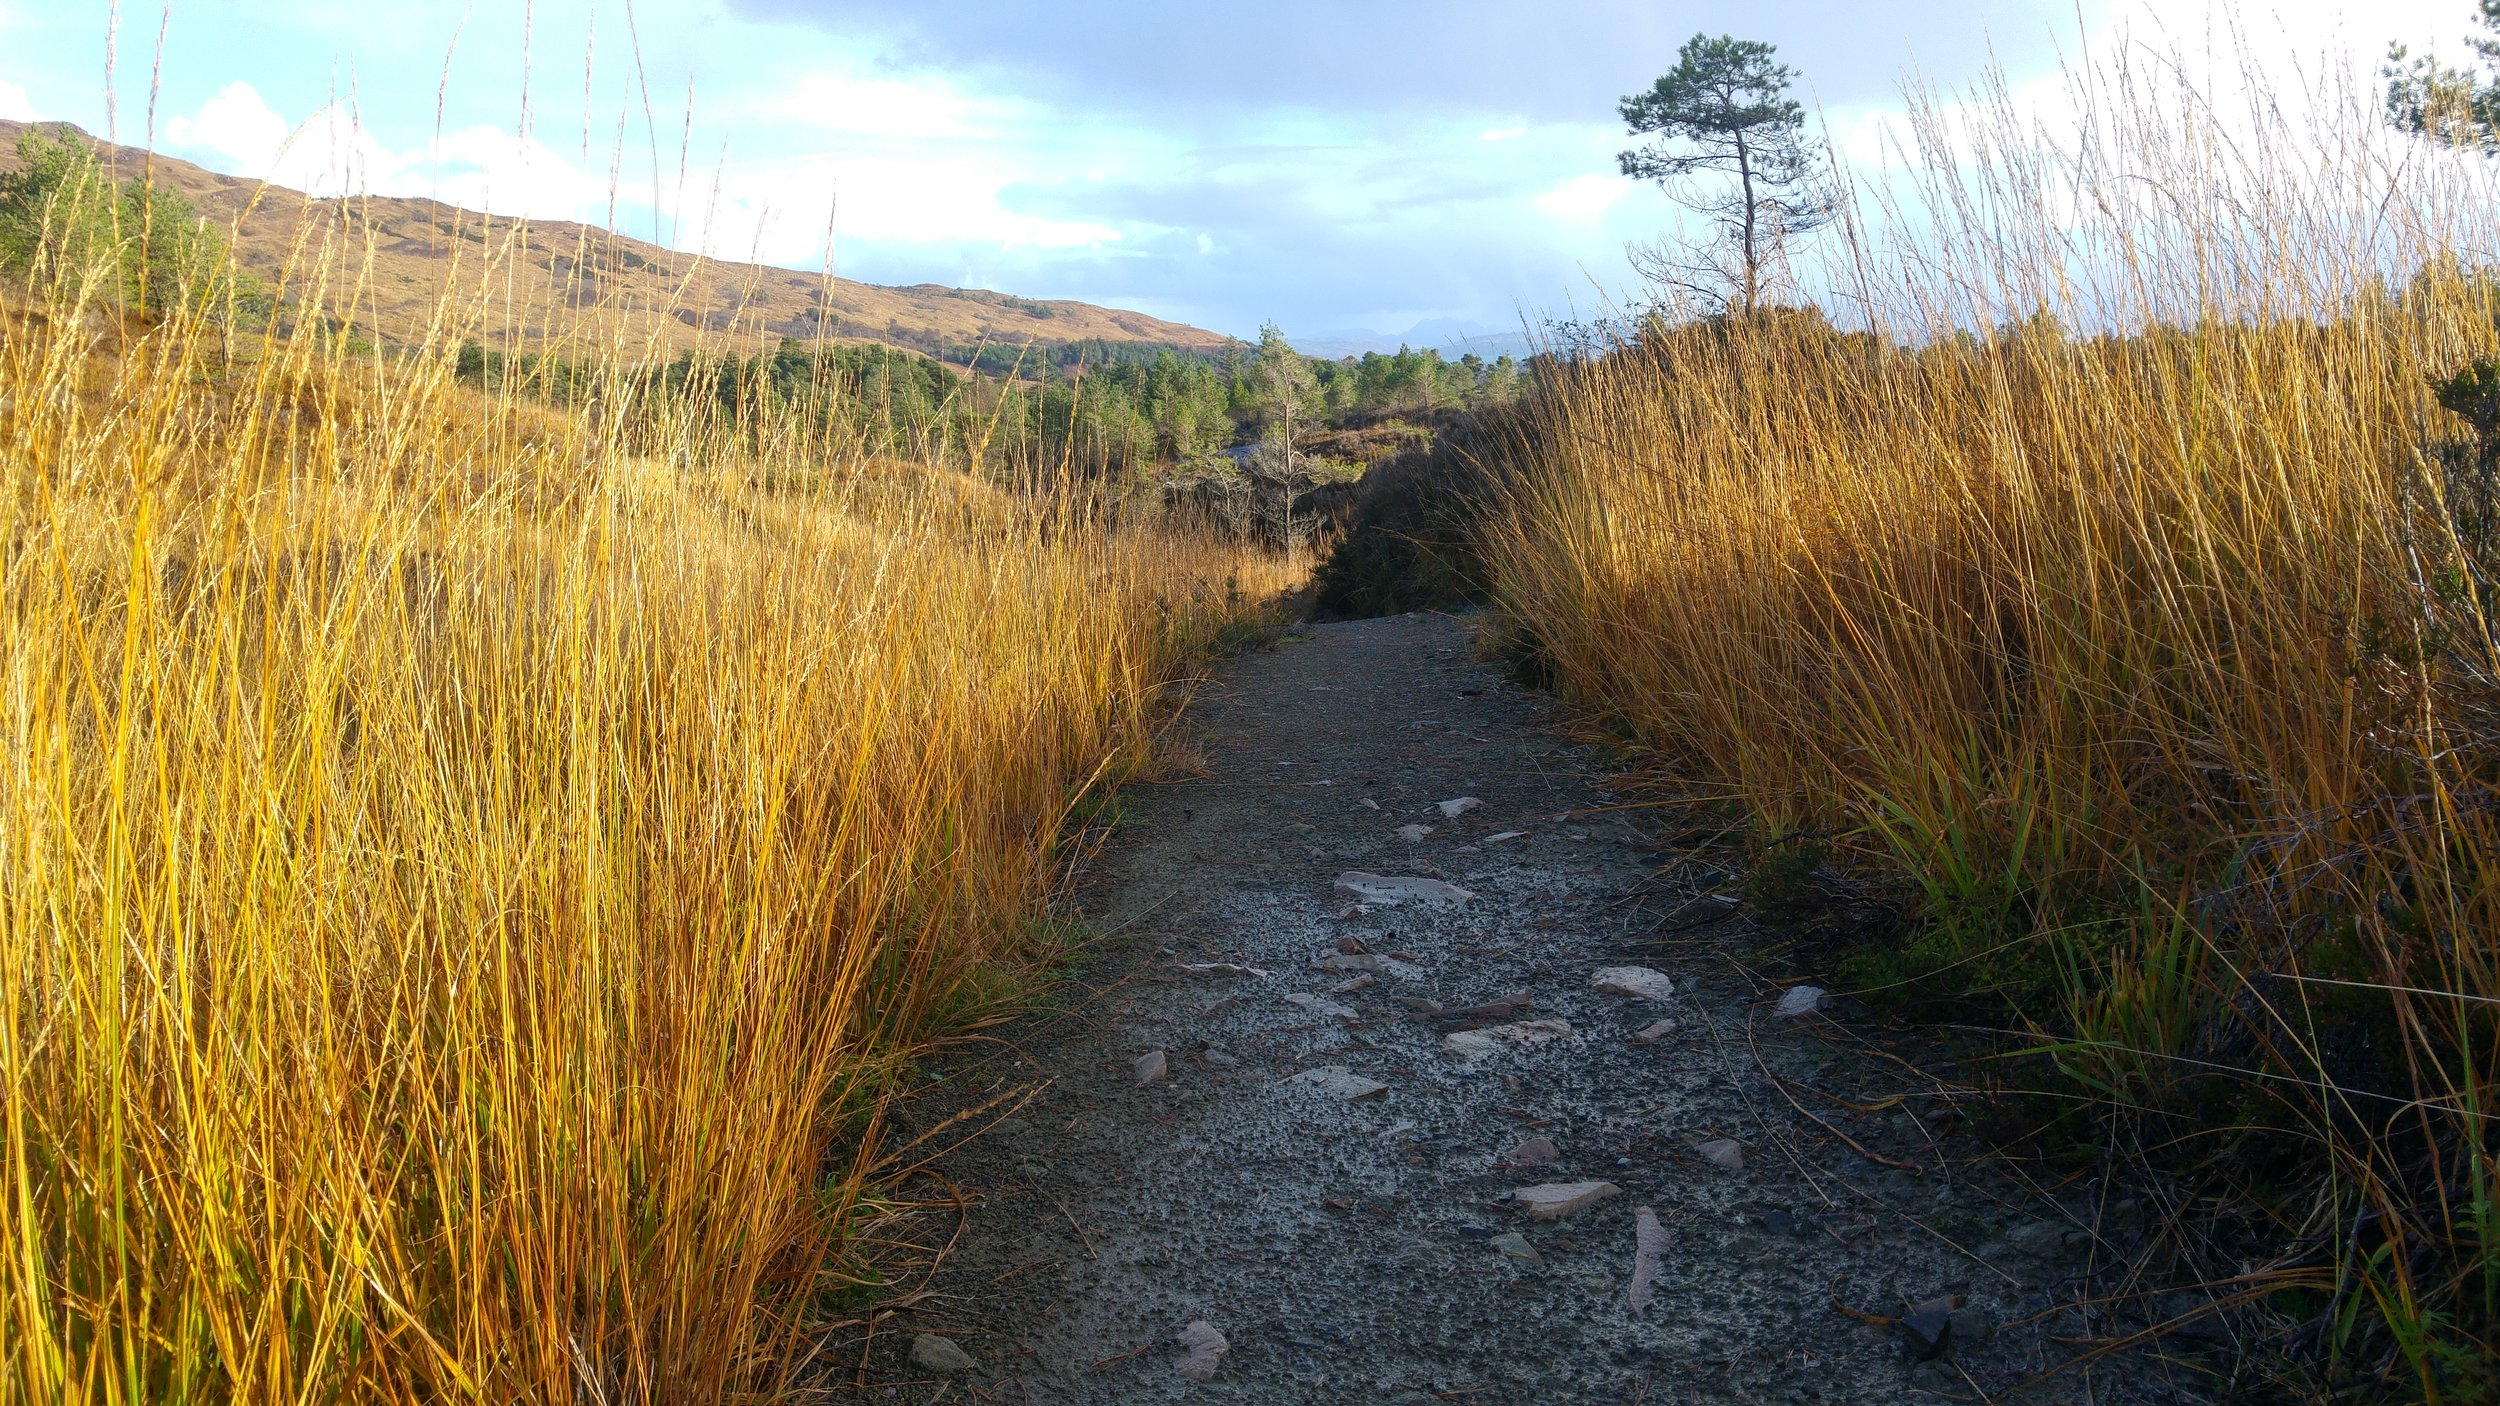 On sunny days, the molinia on the open hill looked fantastic with its autumn colour.